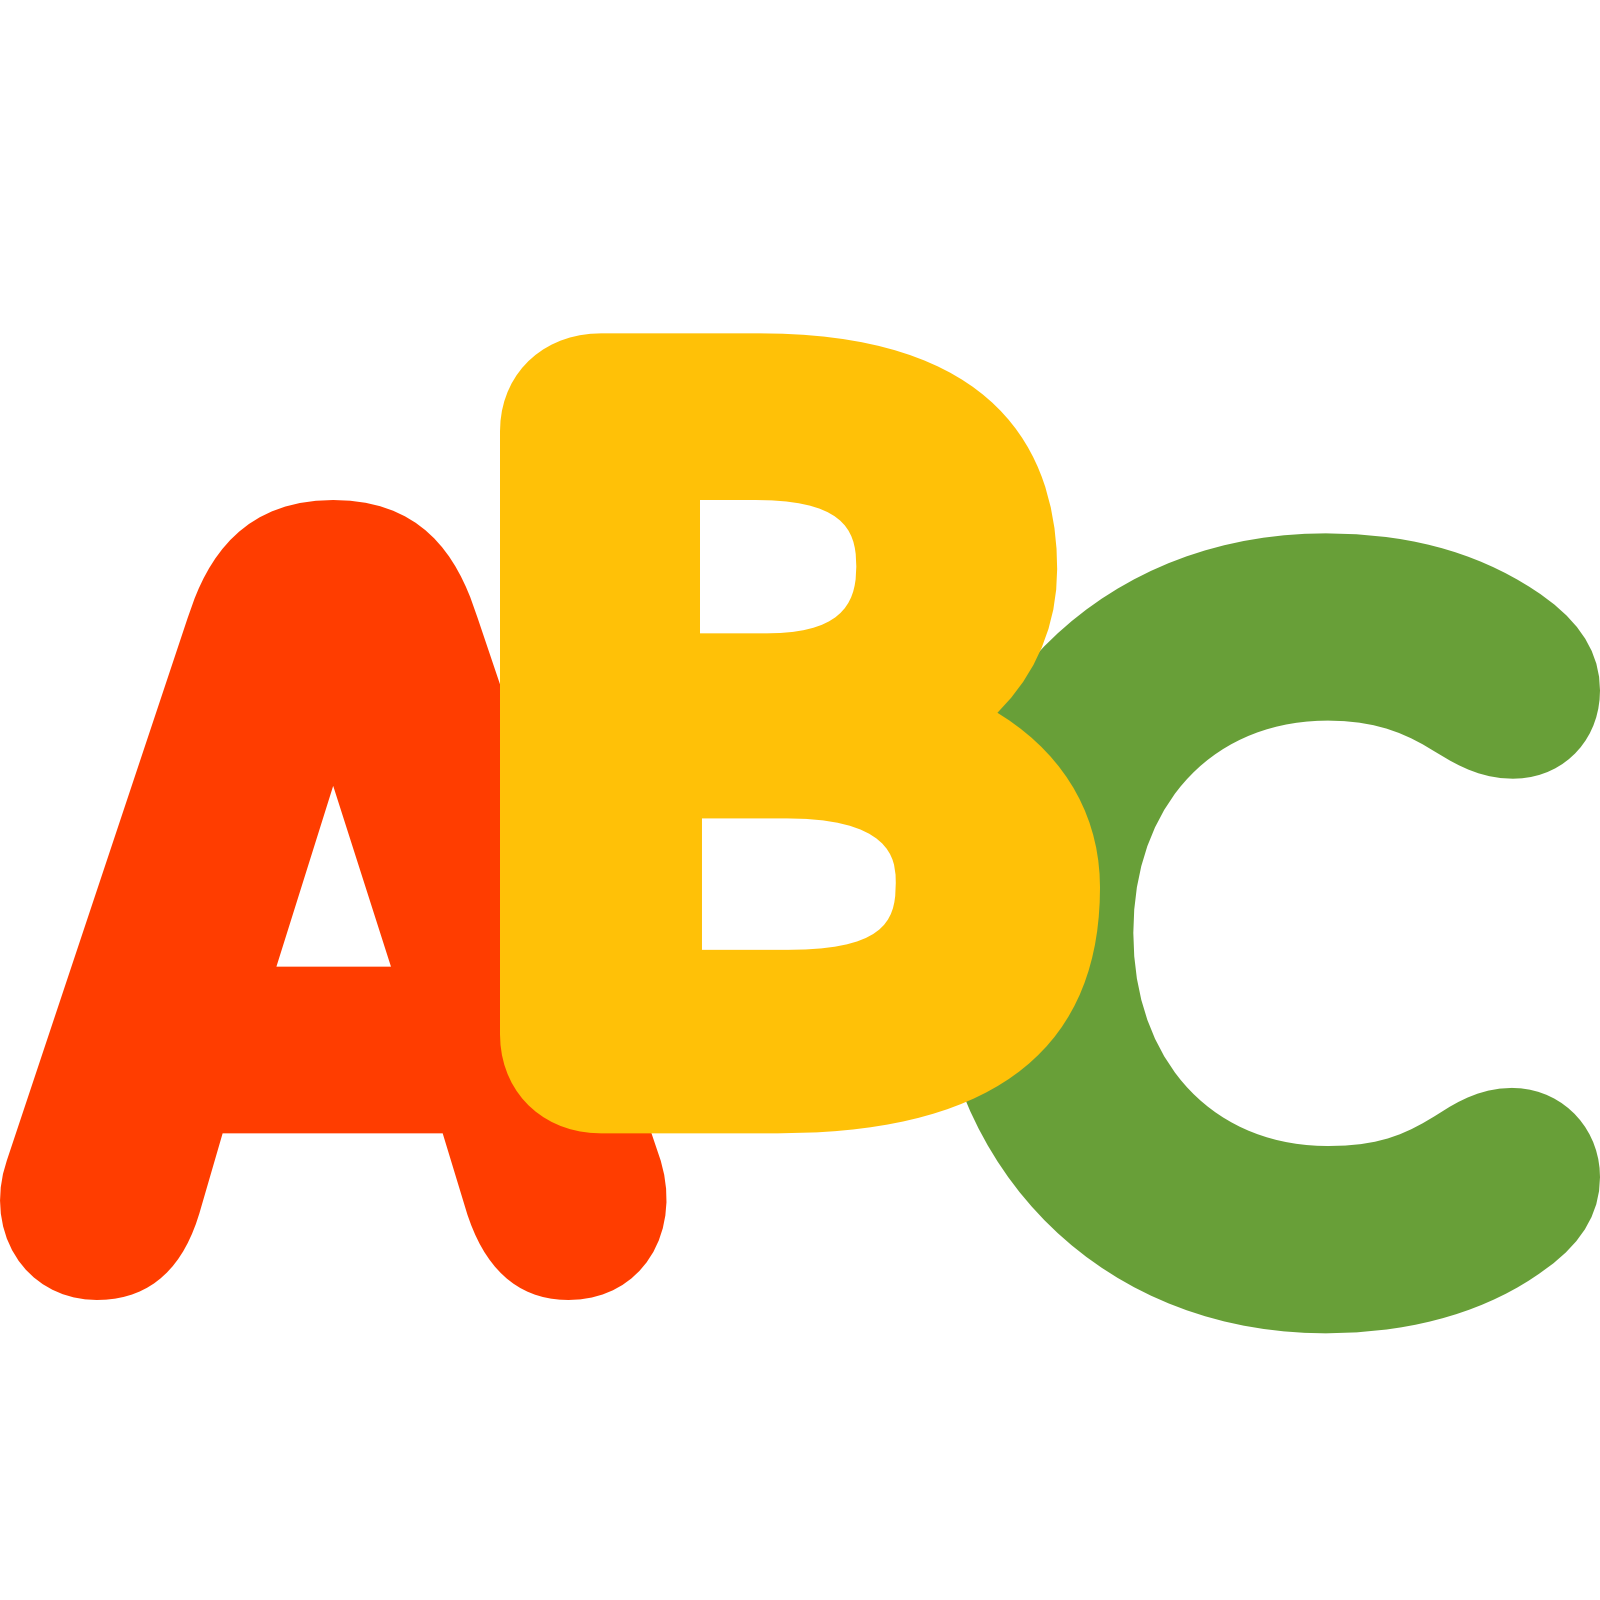 Abc icon clipart Transparent pictures on F.